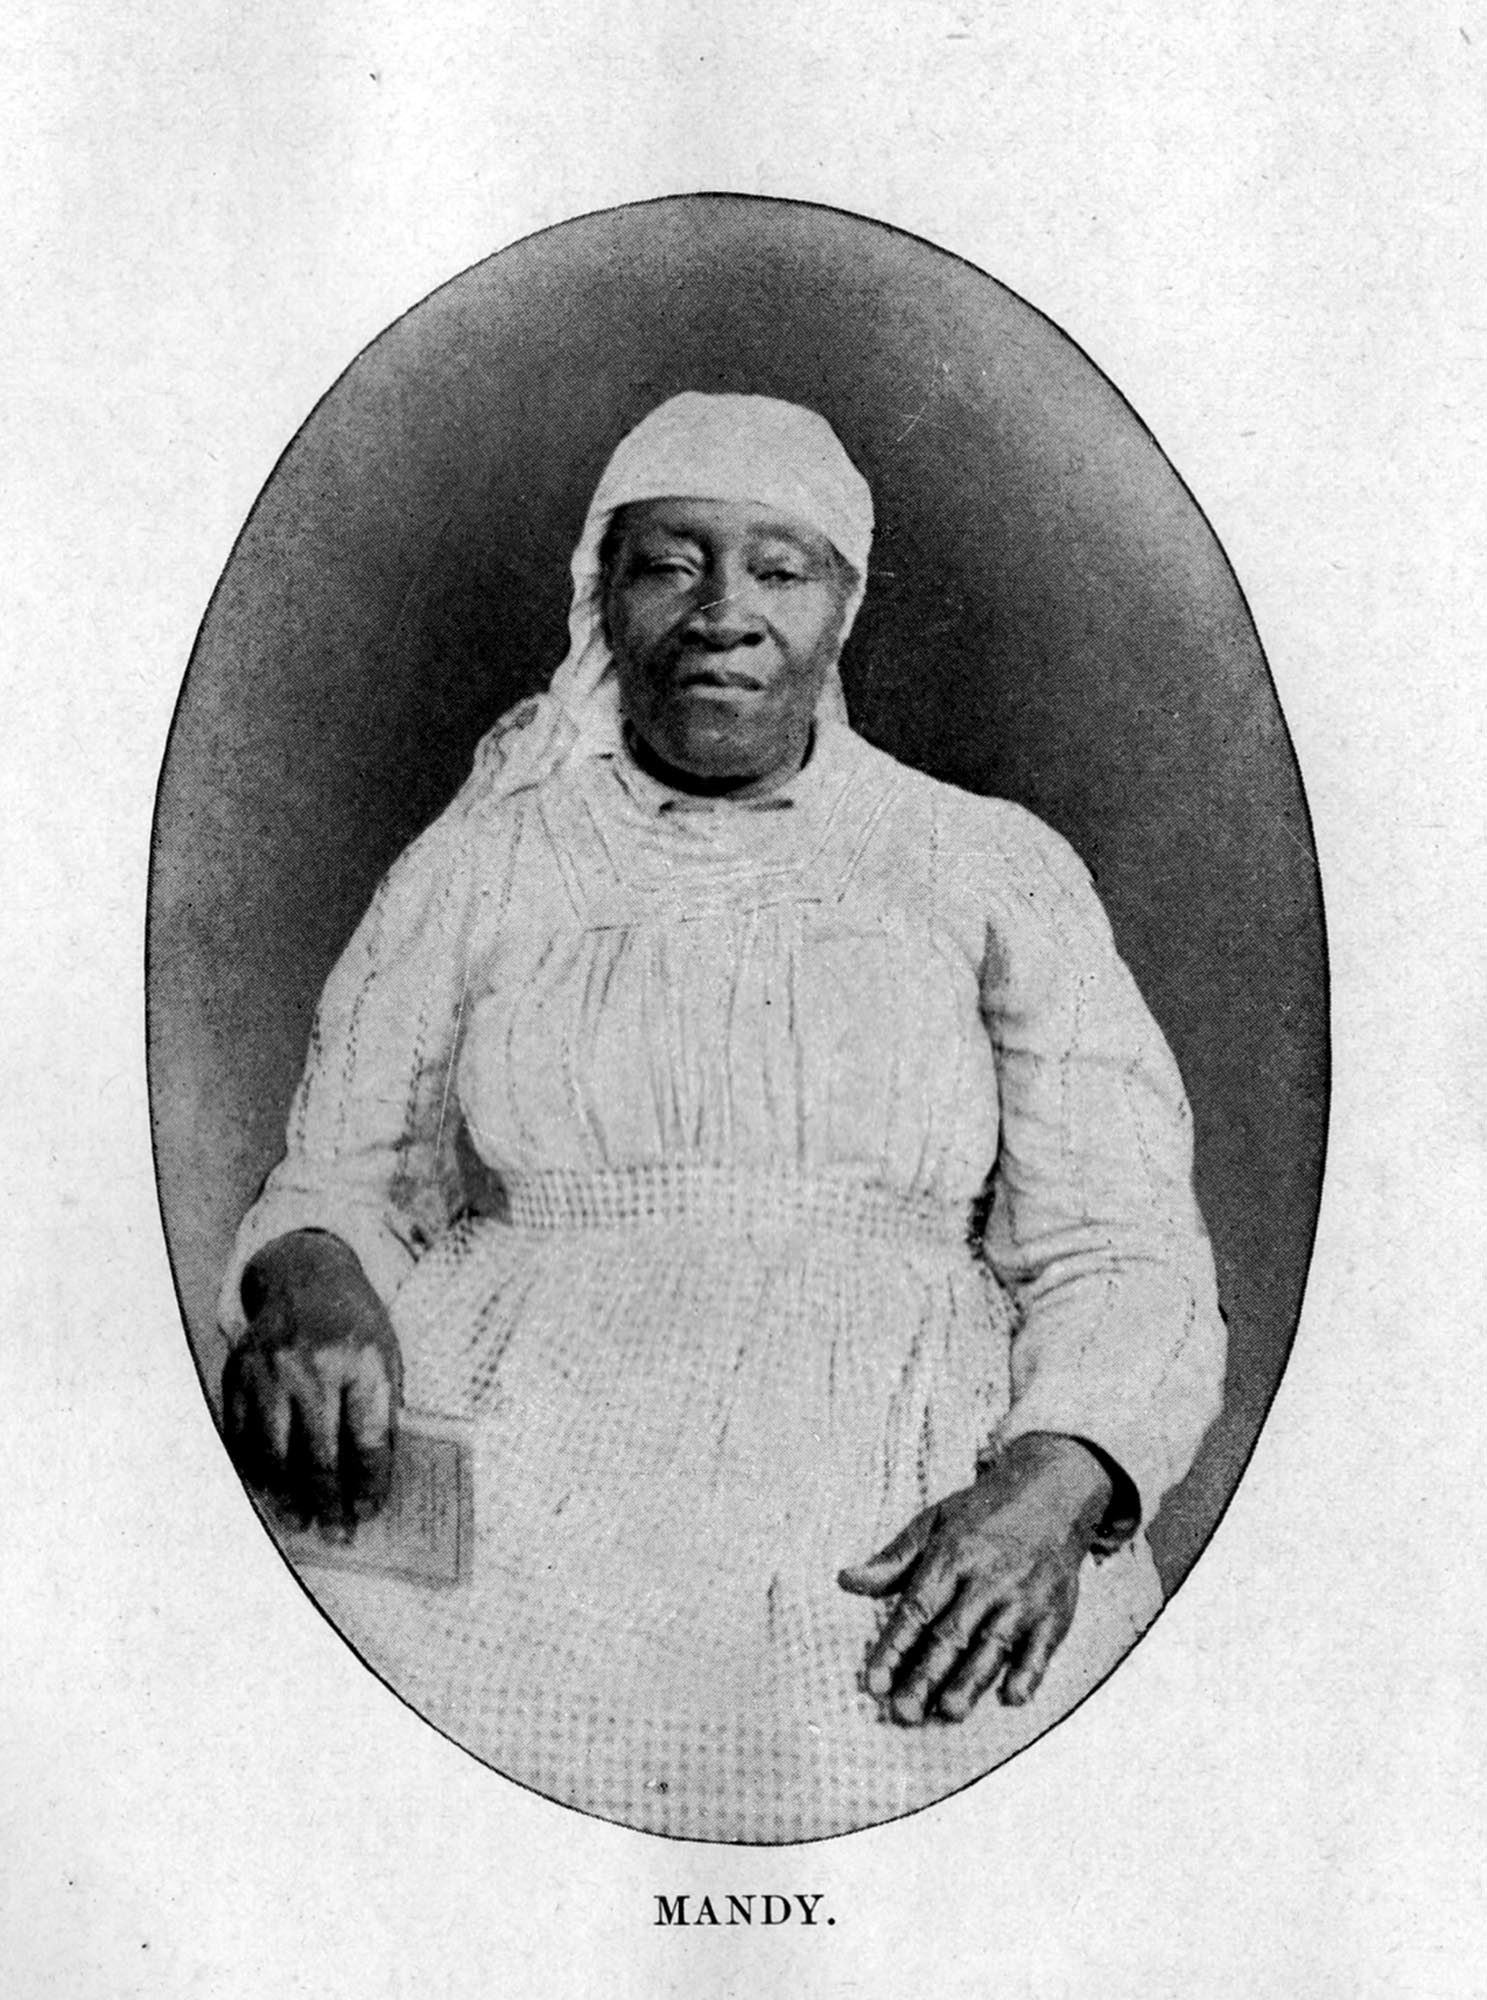 Amanda Bugg, born into slavery on Thomas Miles Watson's plantation